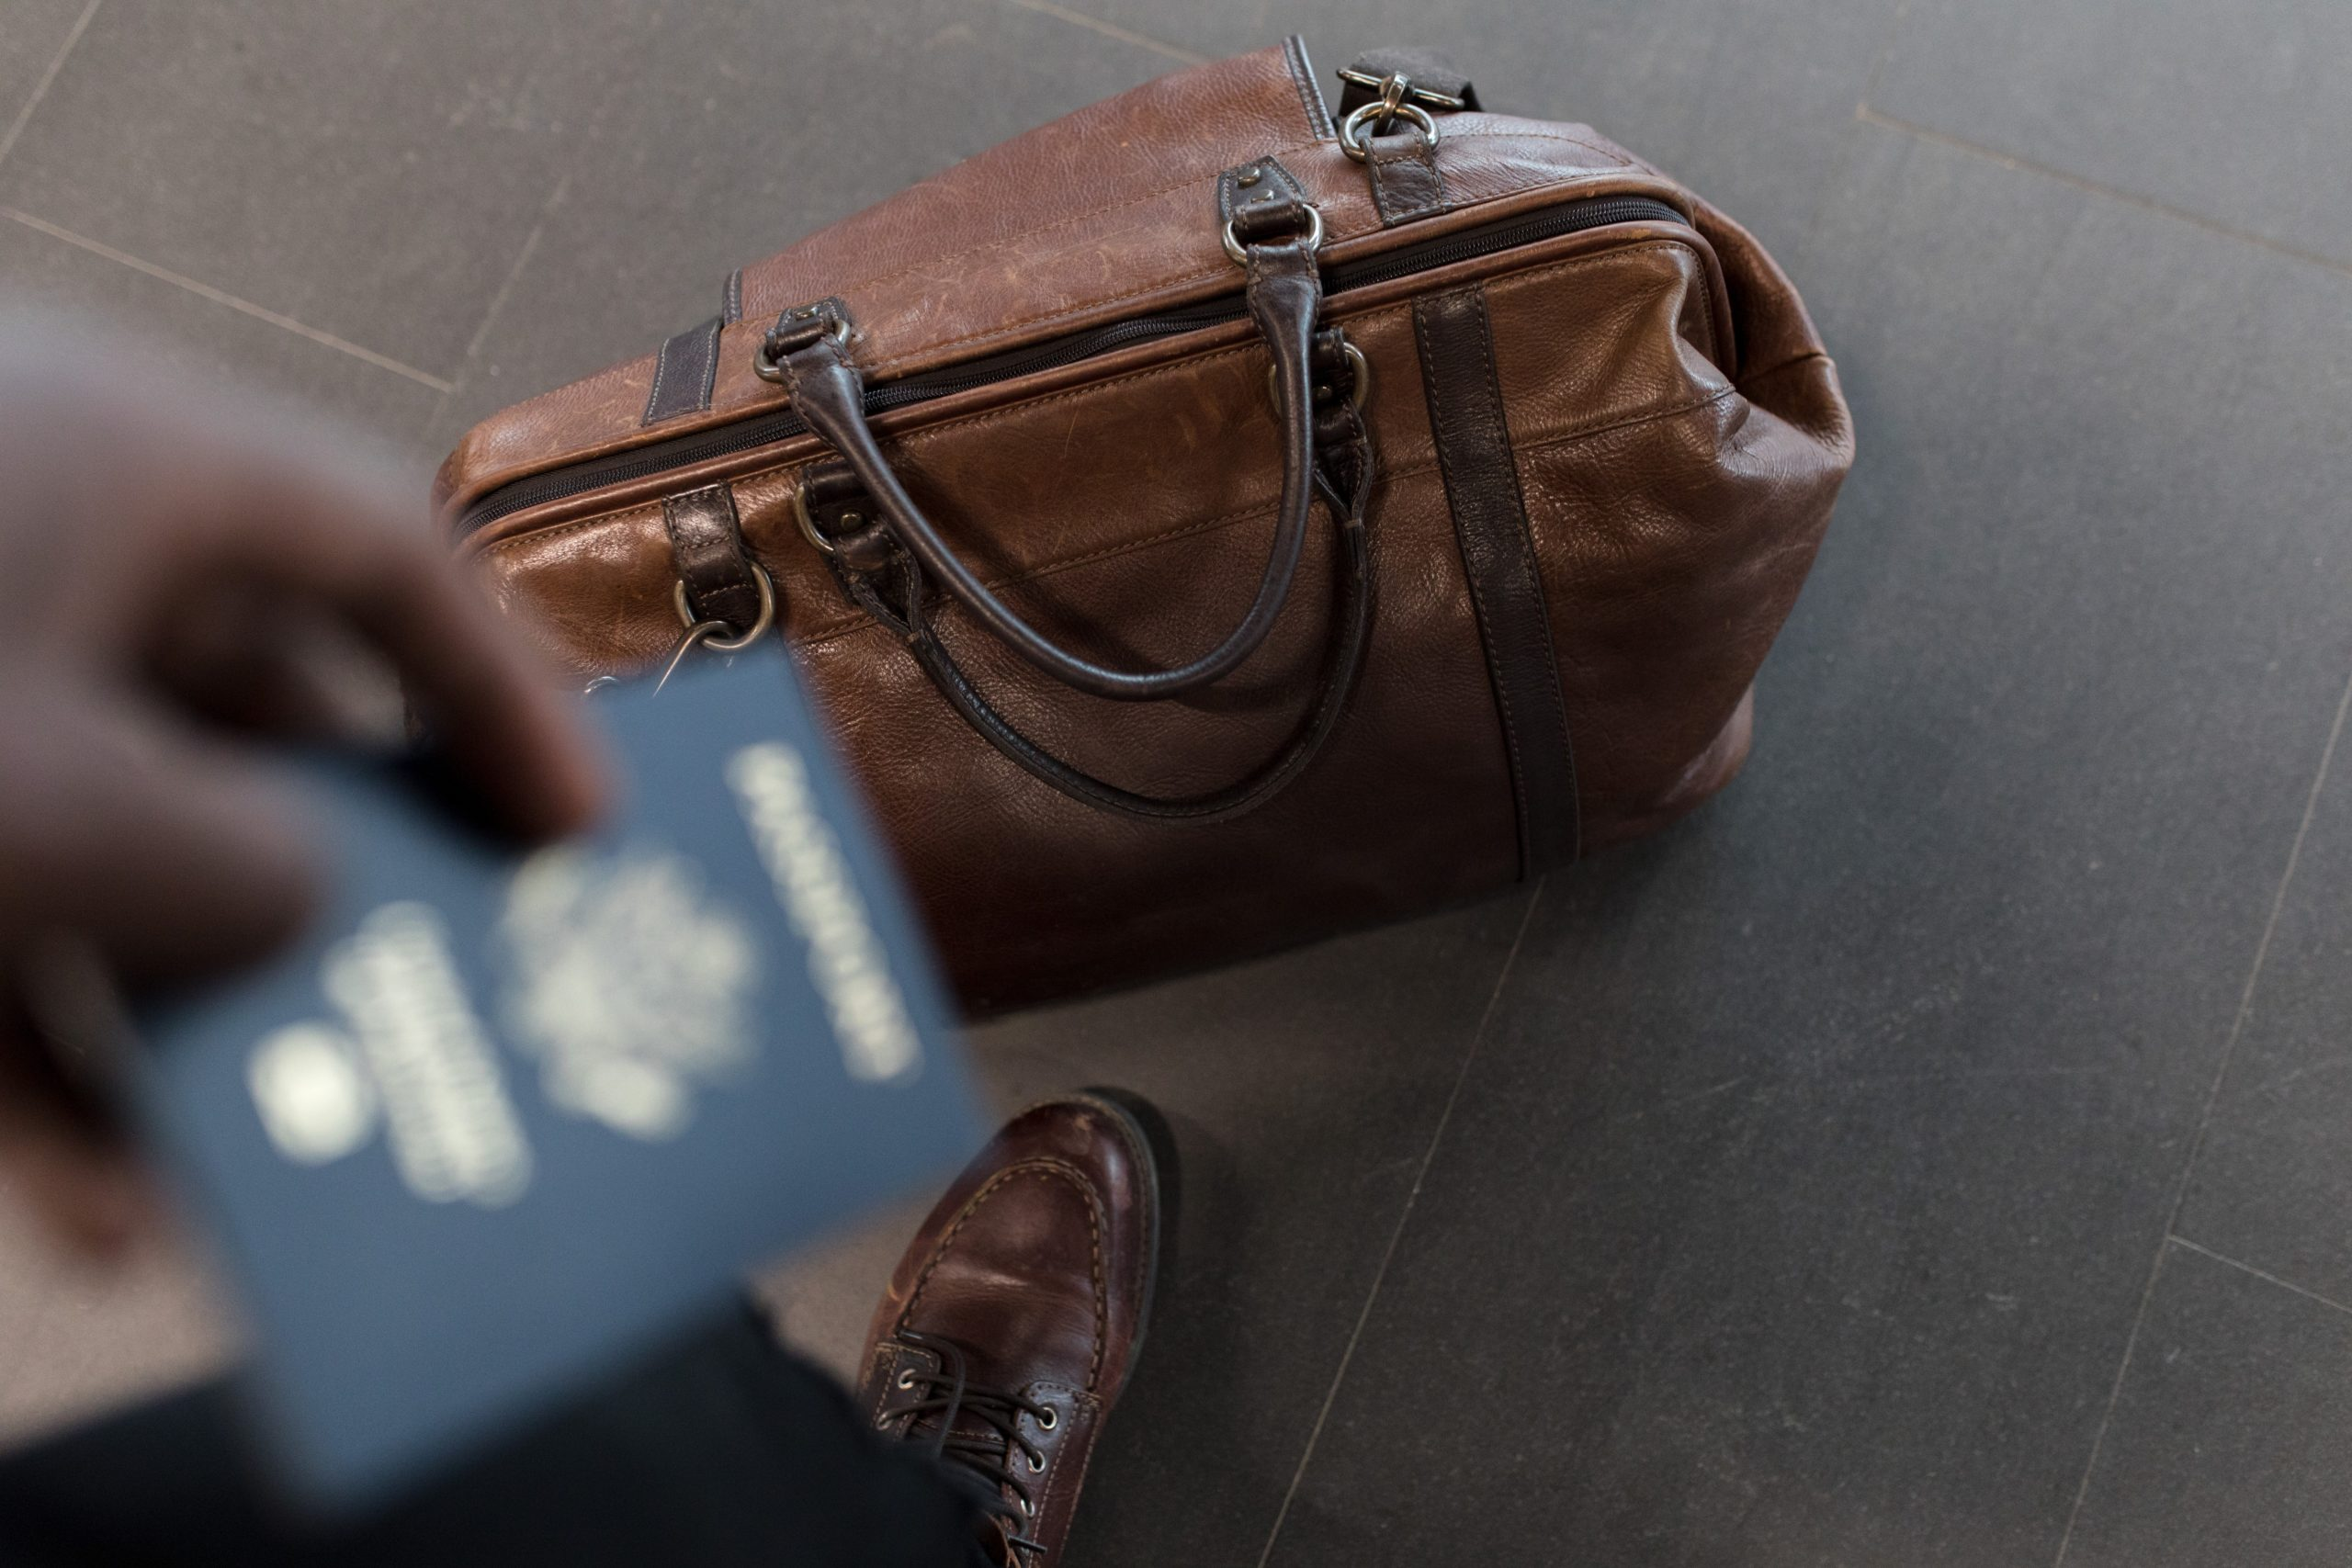 travel bag and person holding passport